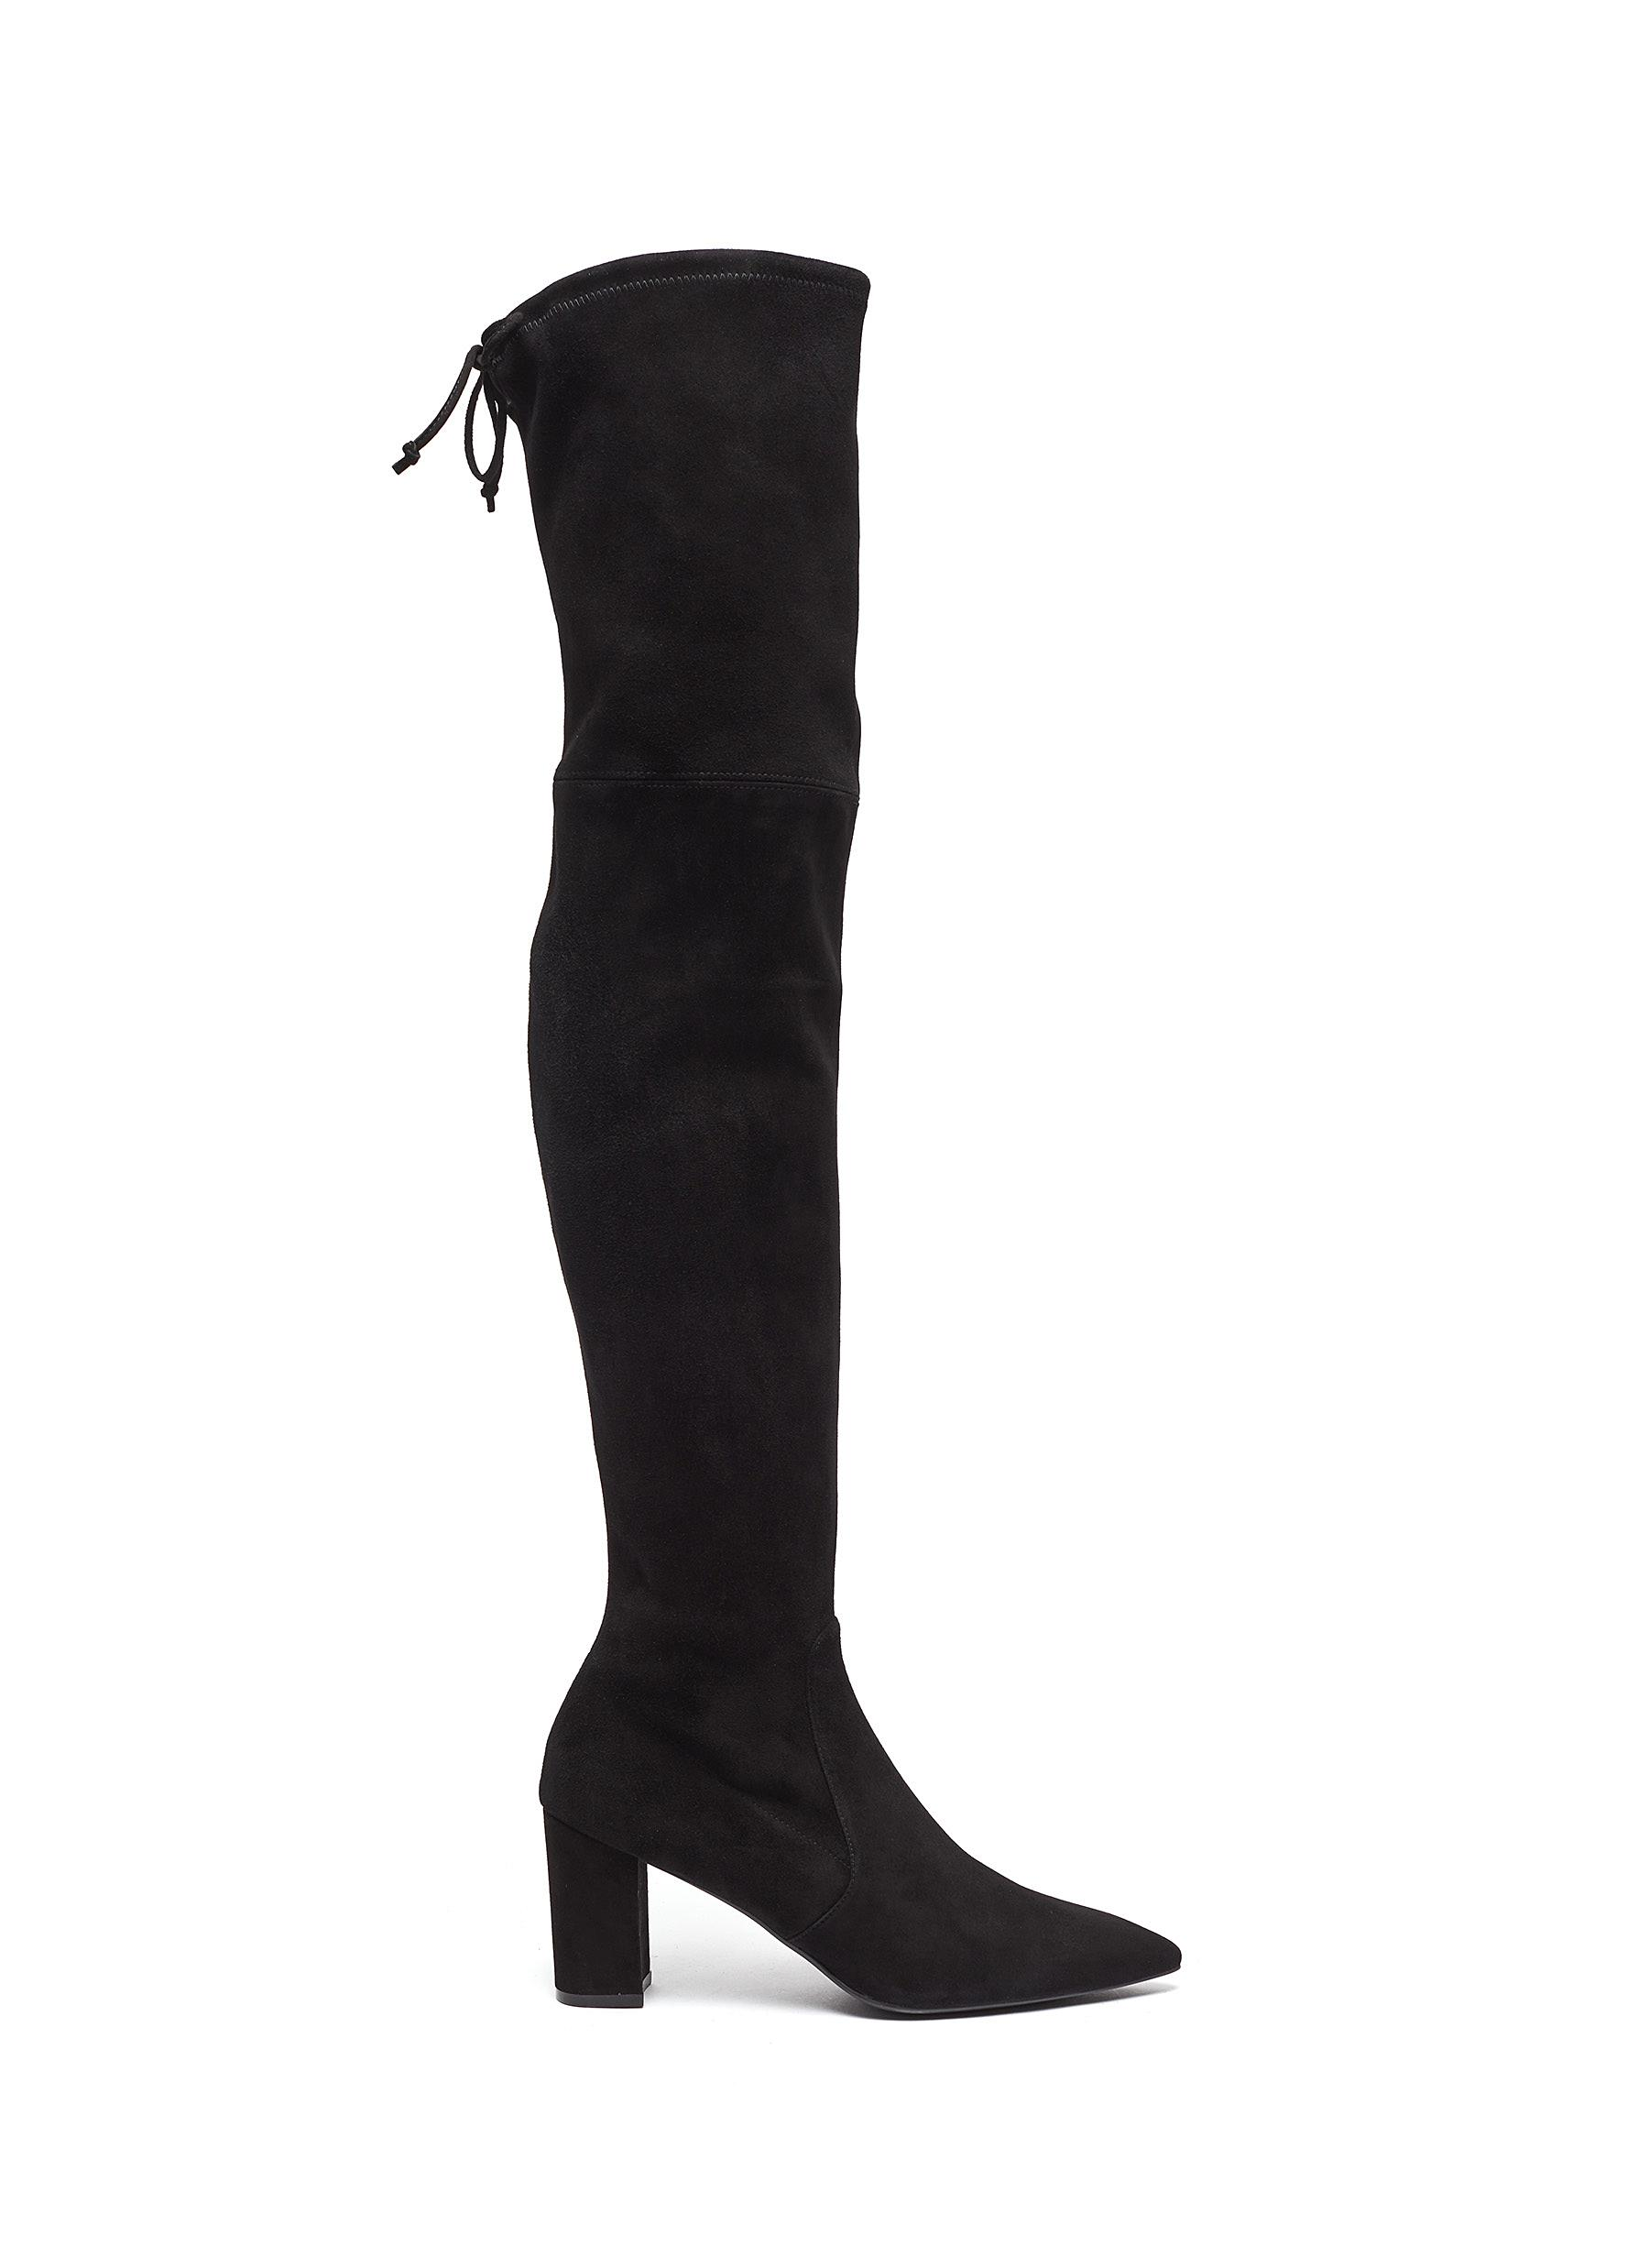 Lesley stretch suede thigh high boots by Stuart Weitzman